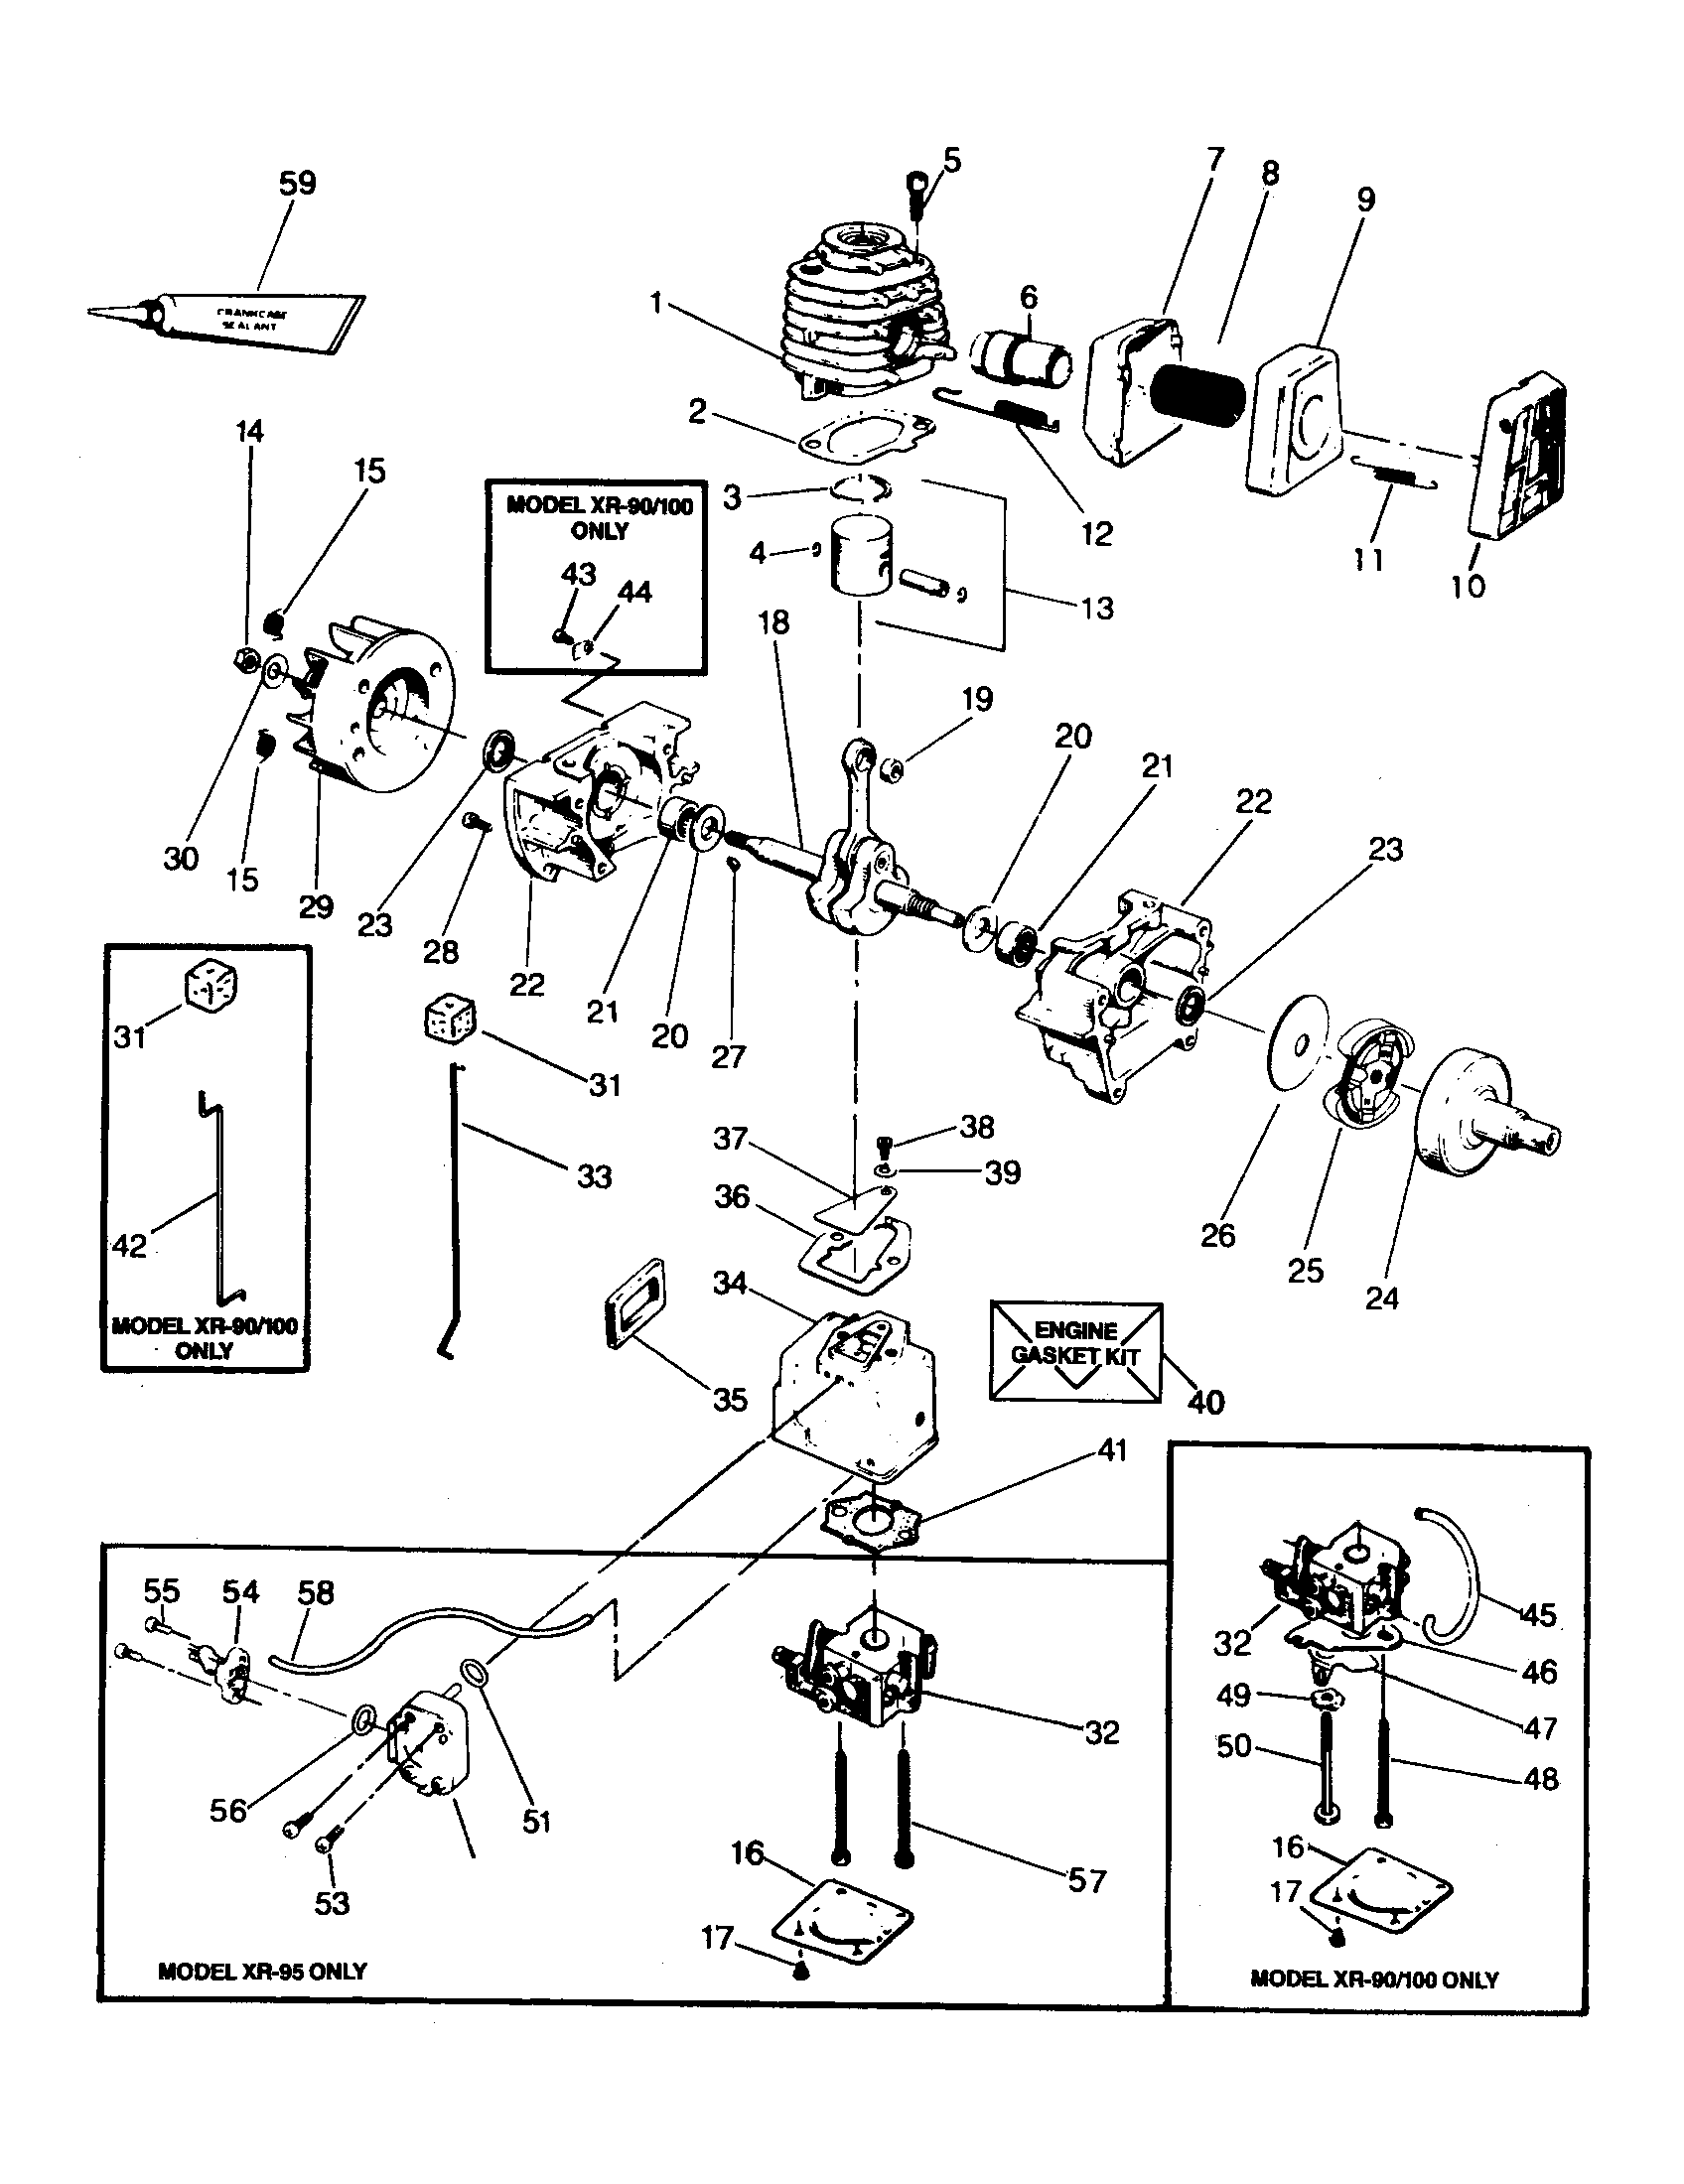 Weed Eater XR-90 power unit diagram